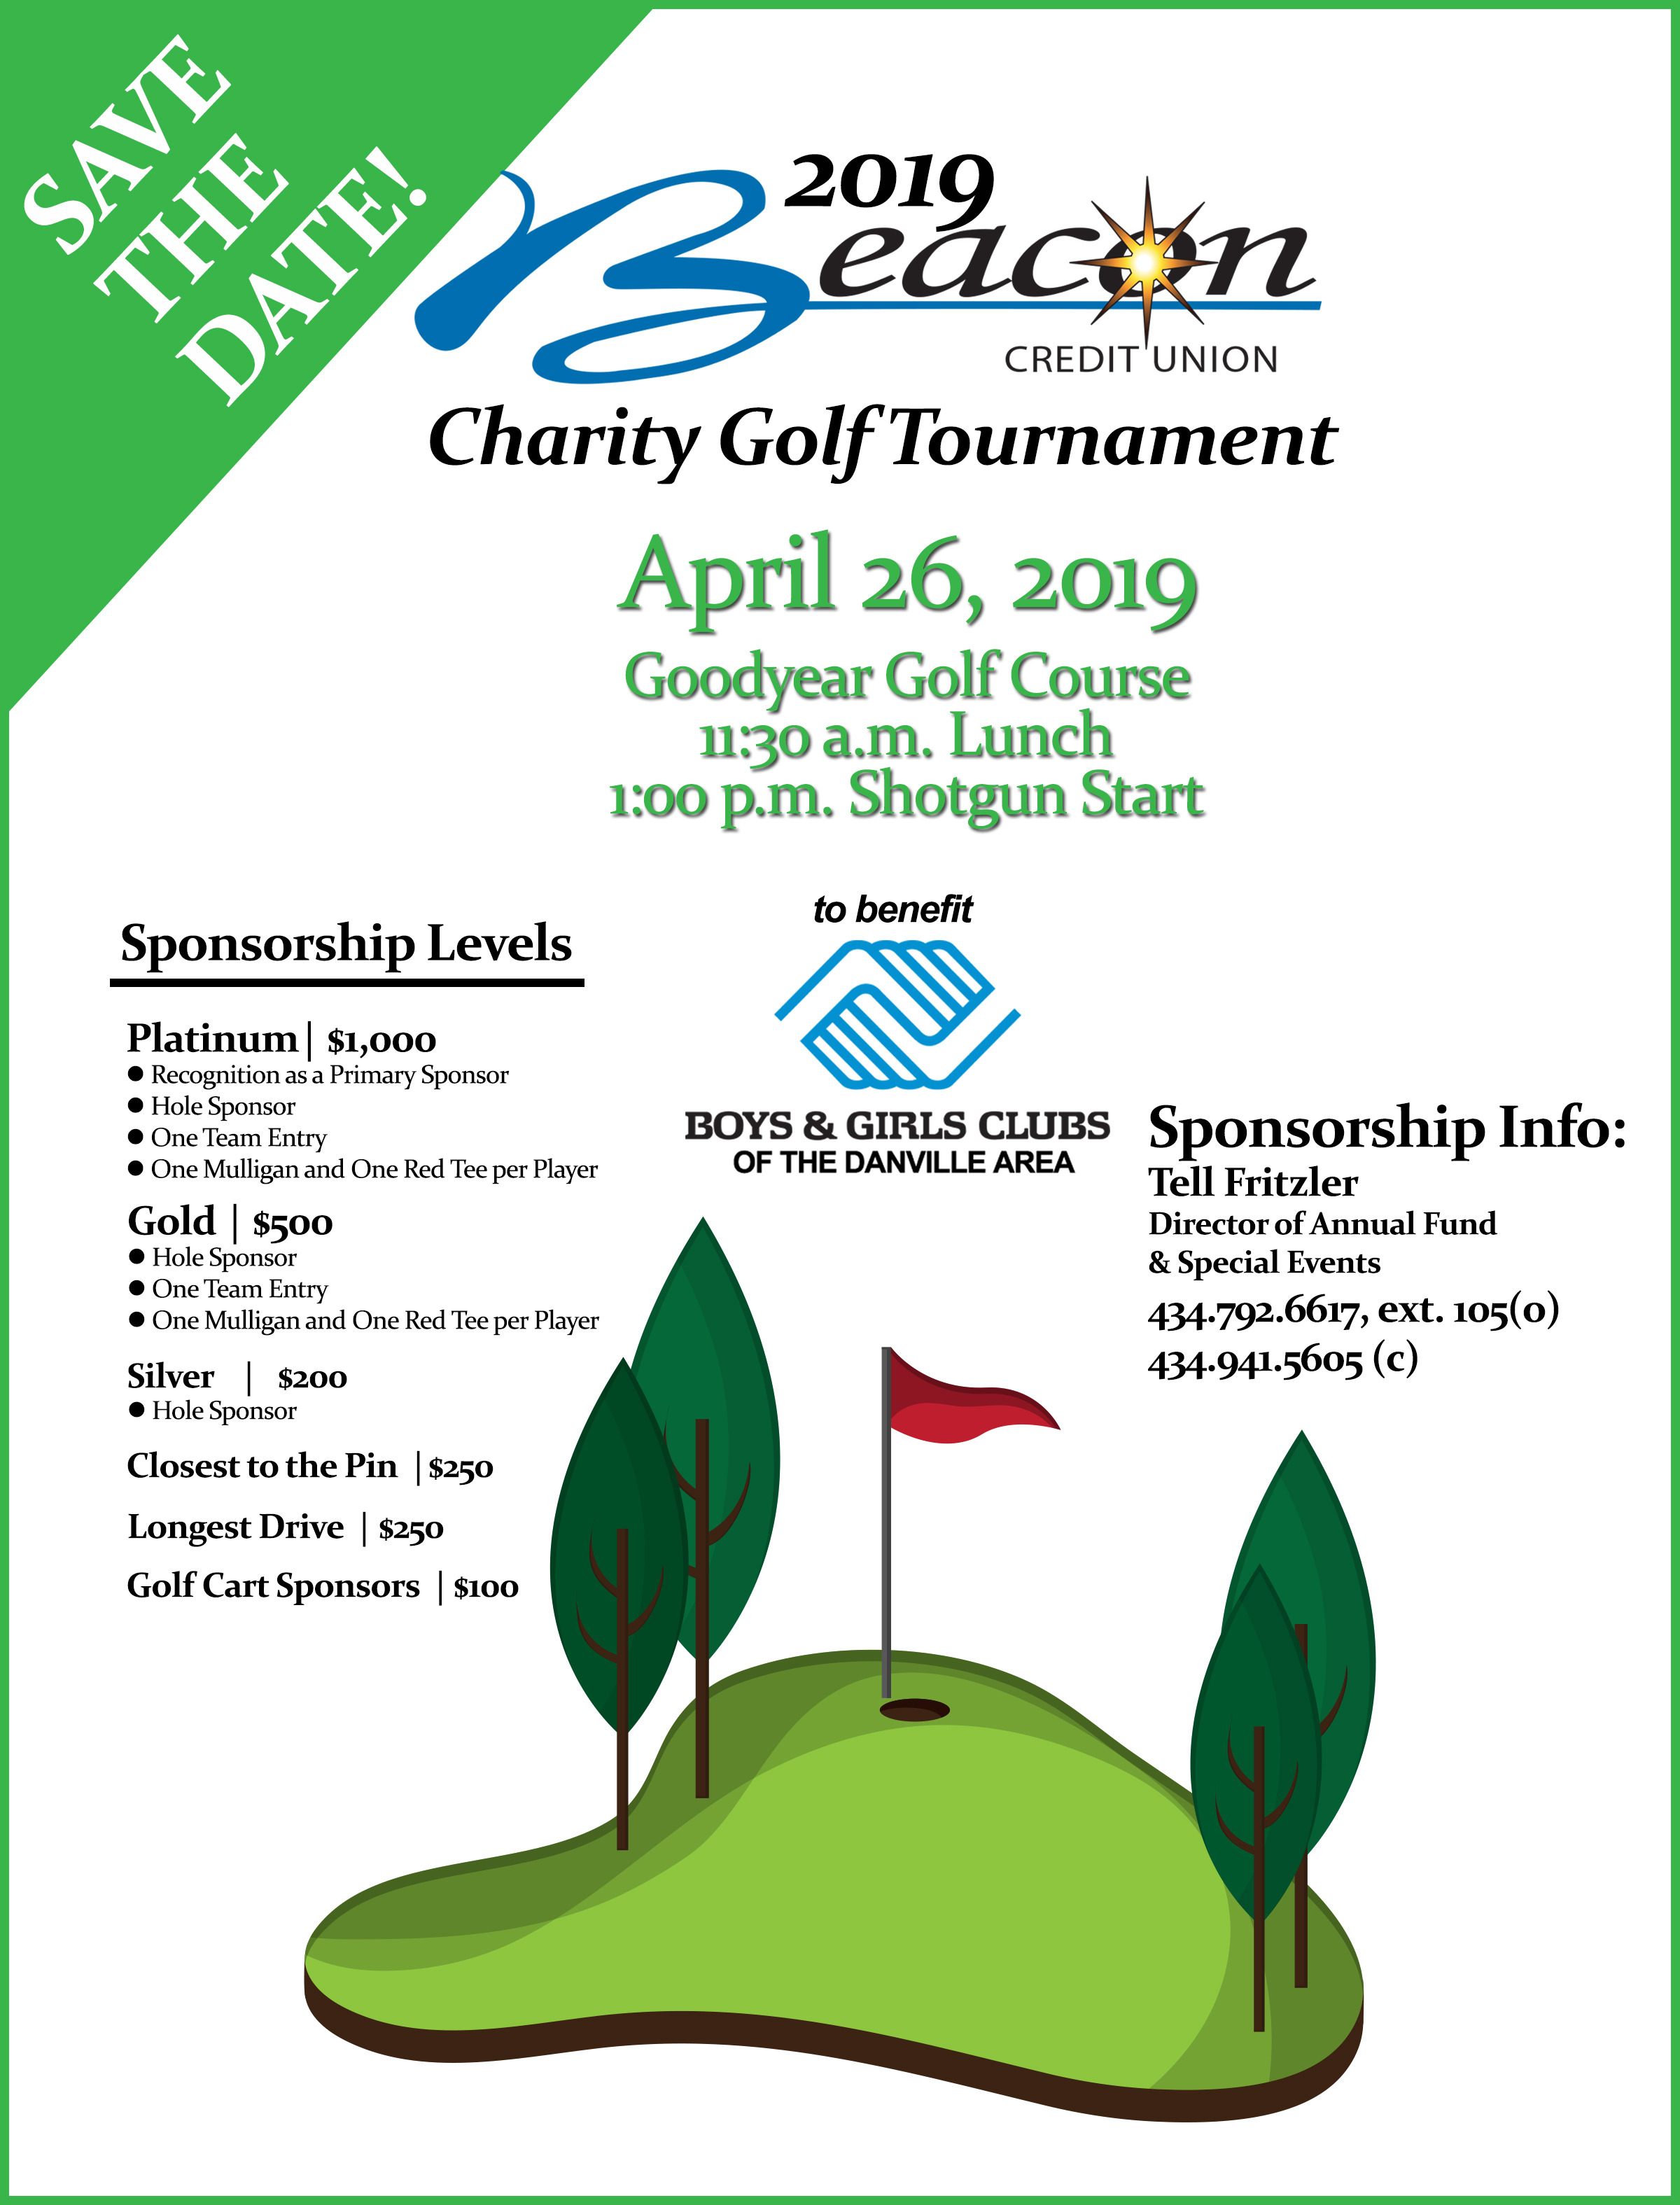 2019 Beacon Credit Union Golf Tournament to benefit Boys & Girls Clubs of the Danville Area